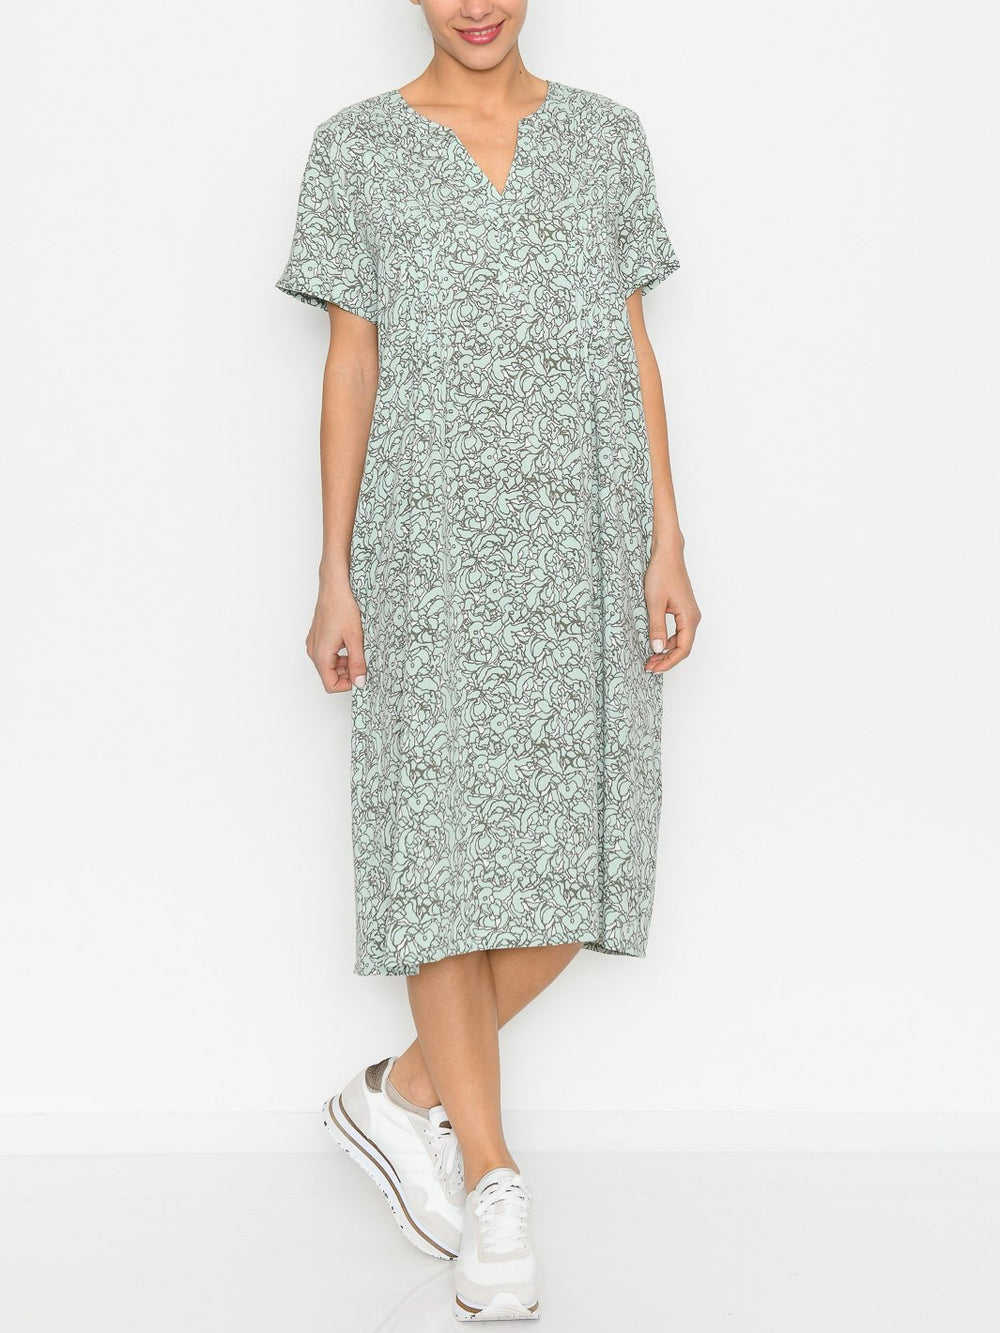 Fransa FRvaleaf 4 dress aqua foam mix - Online-Mode